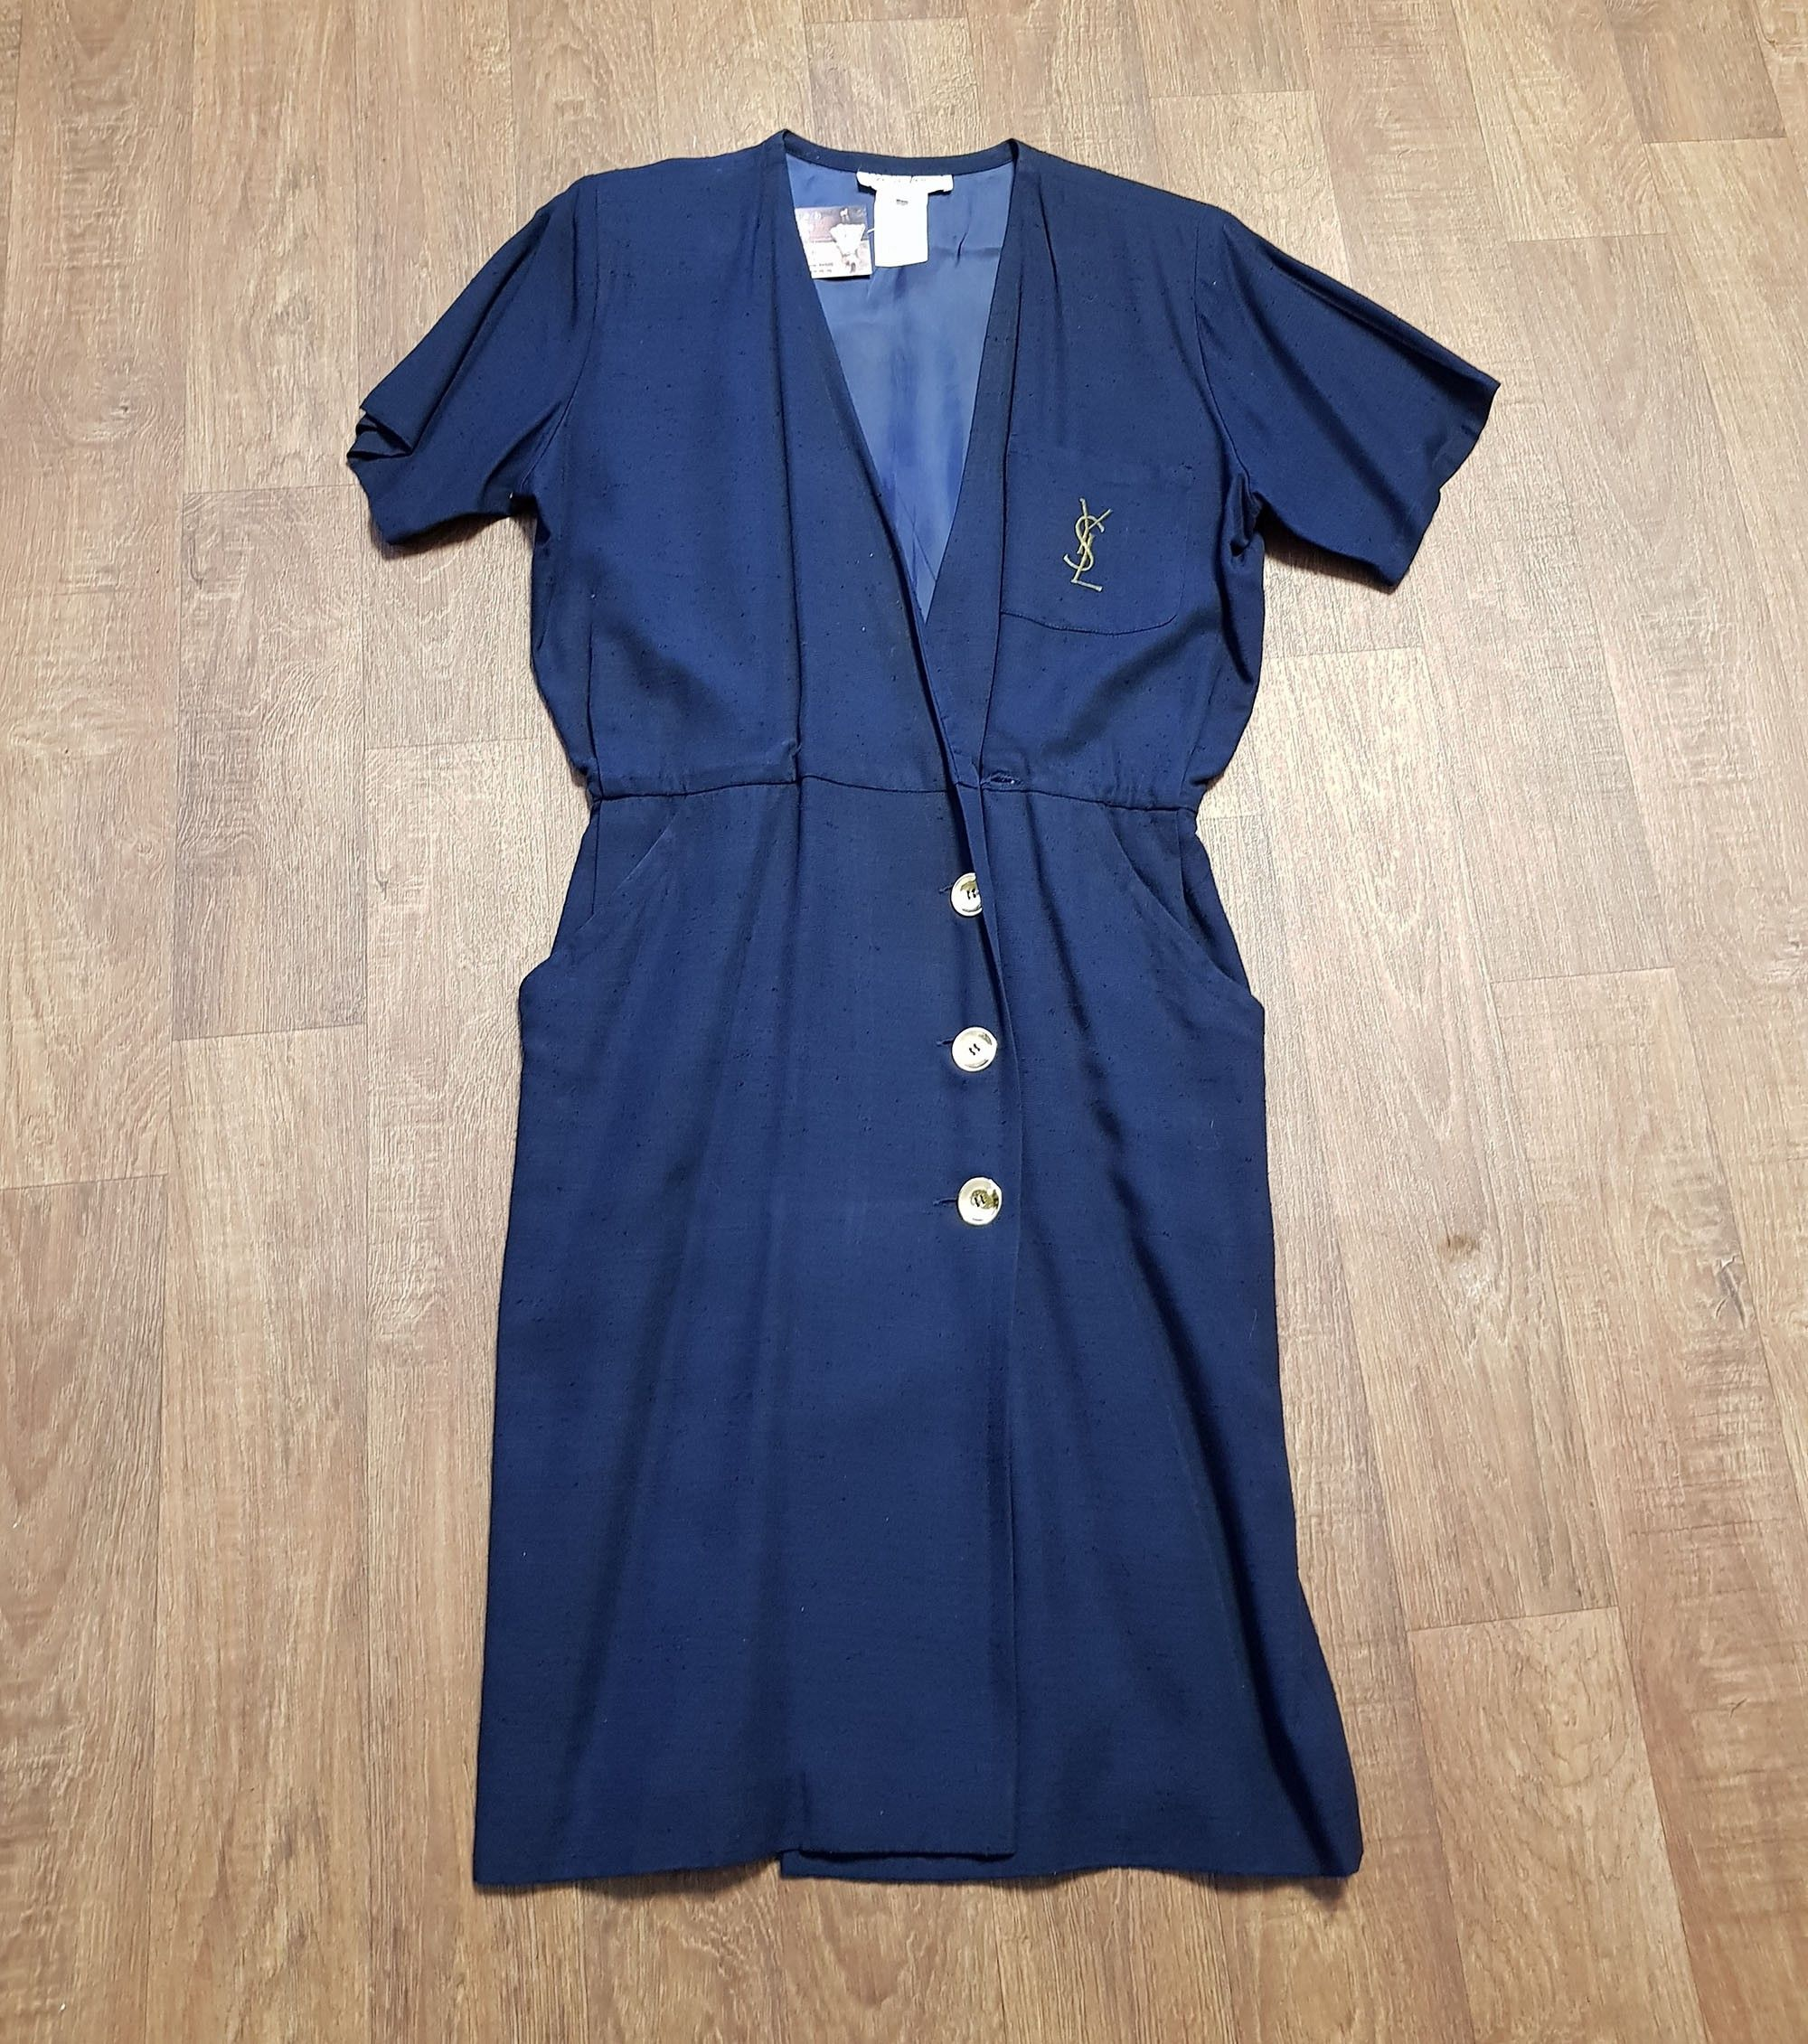 1980s Vintage YSL Navy Nautical Wrap Dress UK Size 12